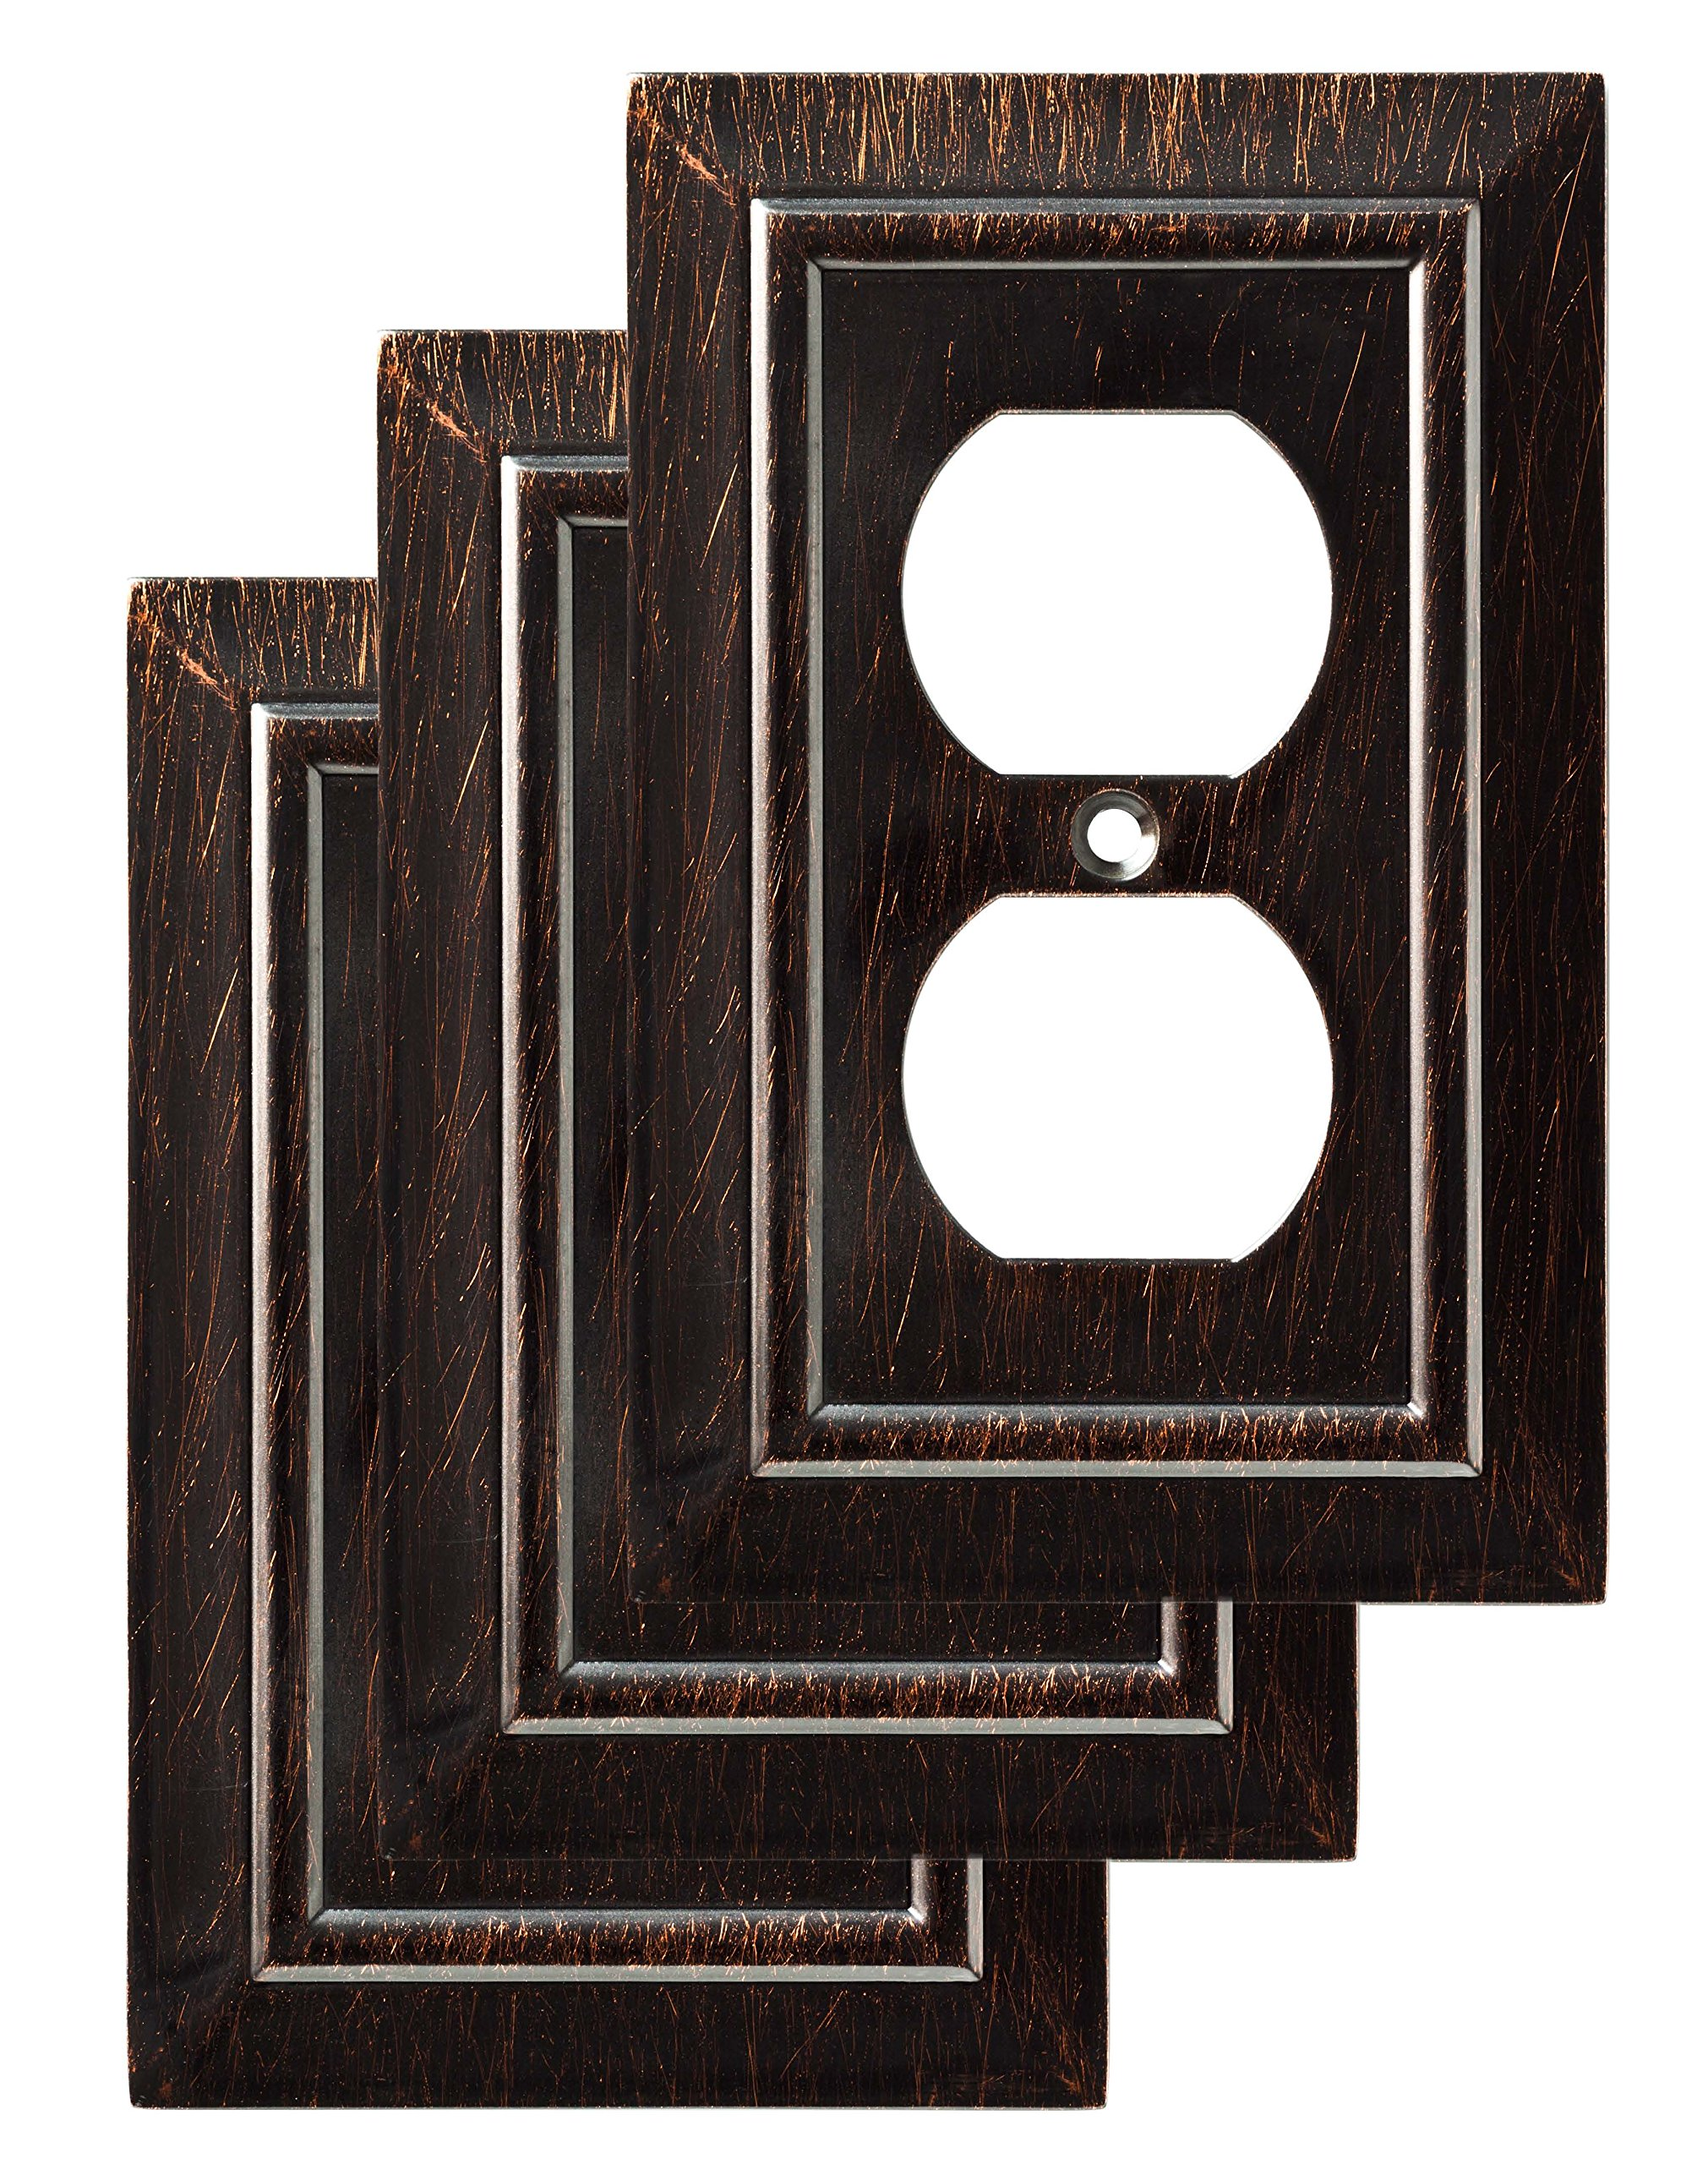 Franklin Brass W35218V-VBR-C Classic Architecture Single Duplex Wall Plate/Switch Plate/Cover (3 Pack), Venetian Bronze